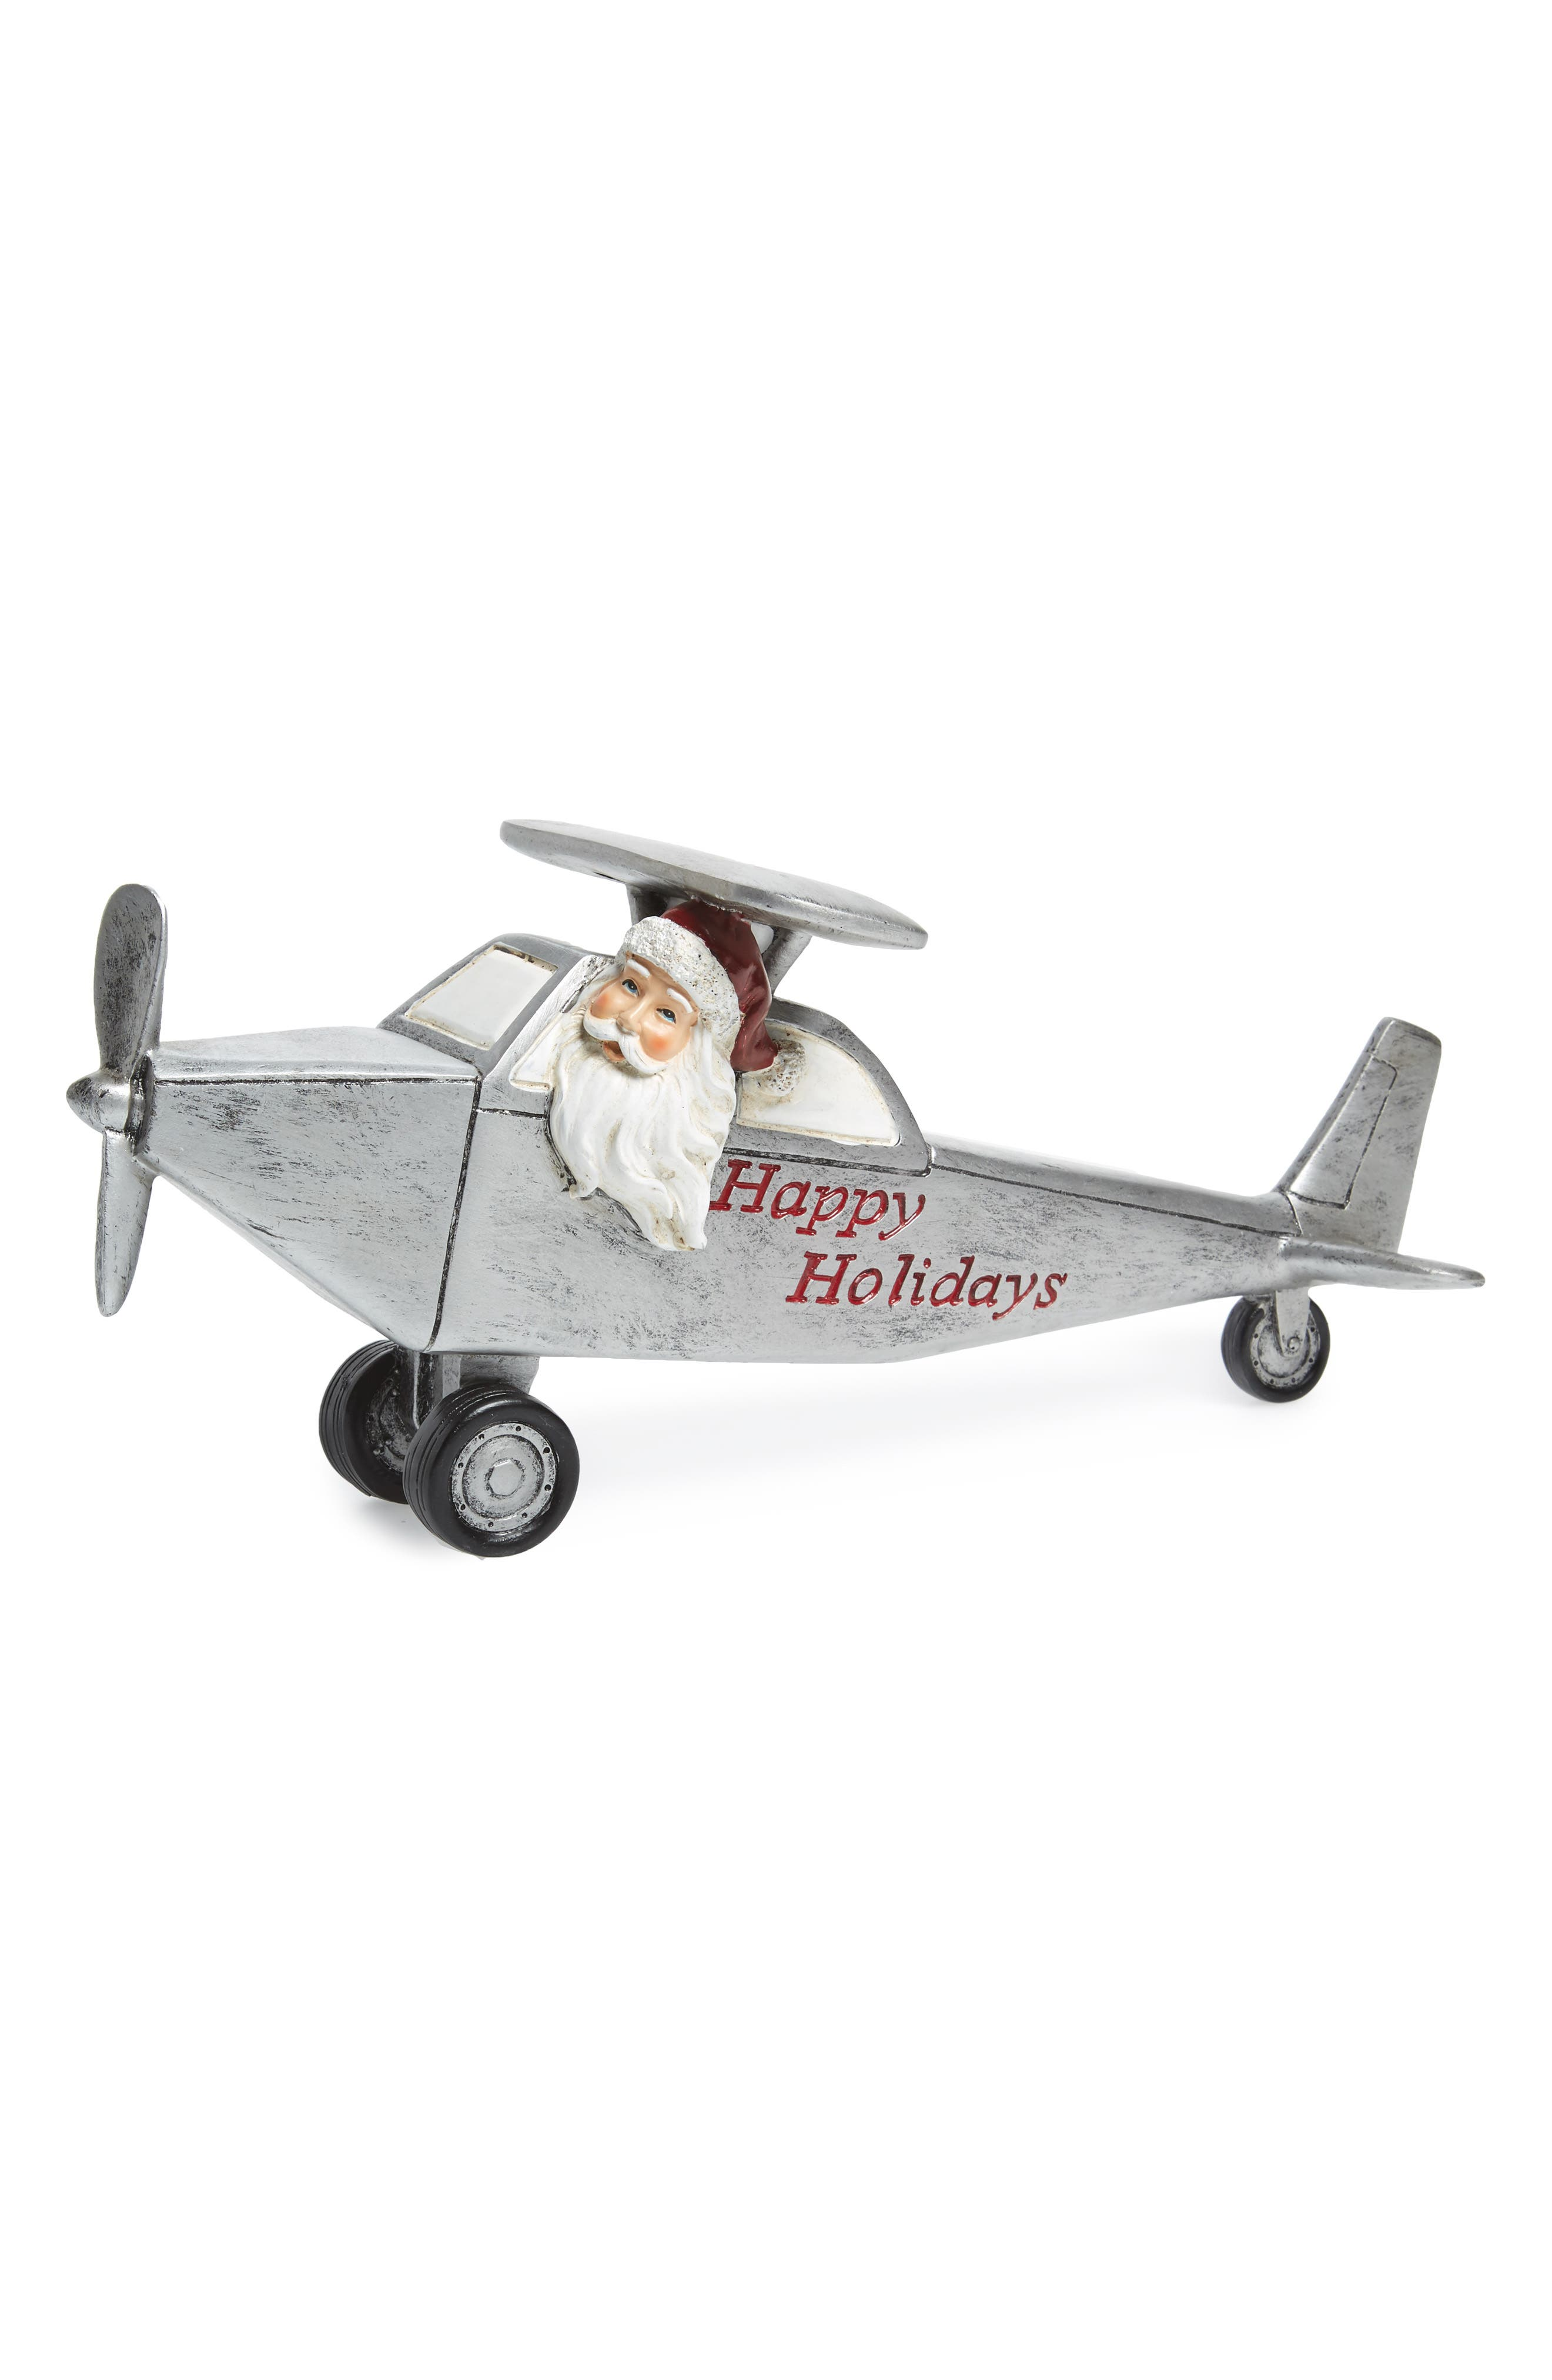 Main Image - ALLSTATE Santa Airplane Ornament